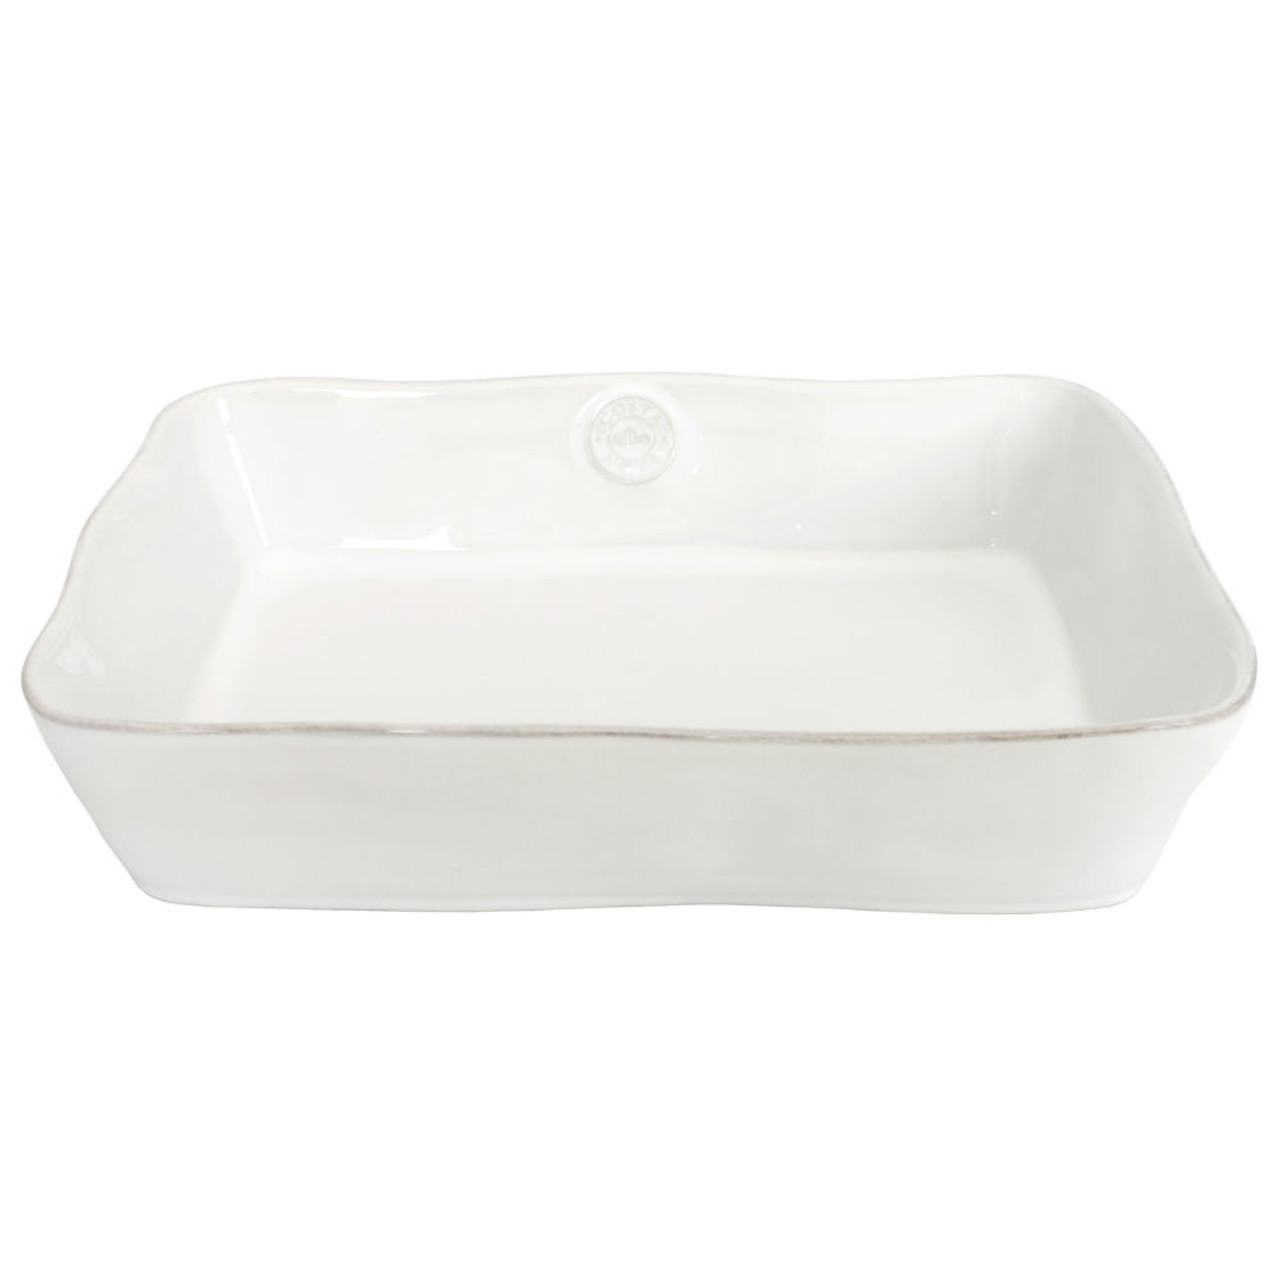 NOVA RECTANGLE BAKER 35cm - WHITE